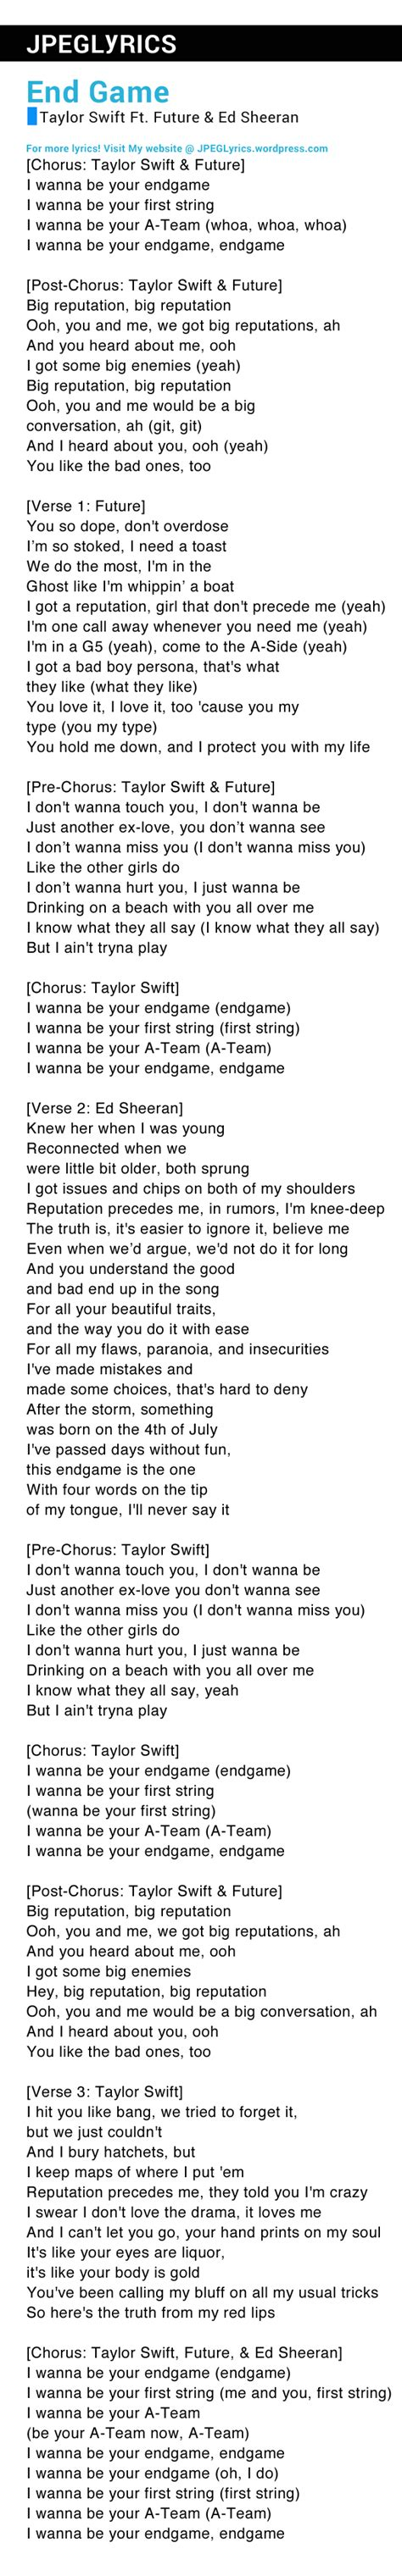 end game lyrics about end game by taylor swift ft future ed sheeran lyrics